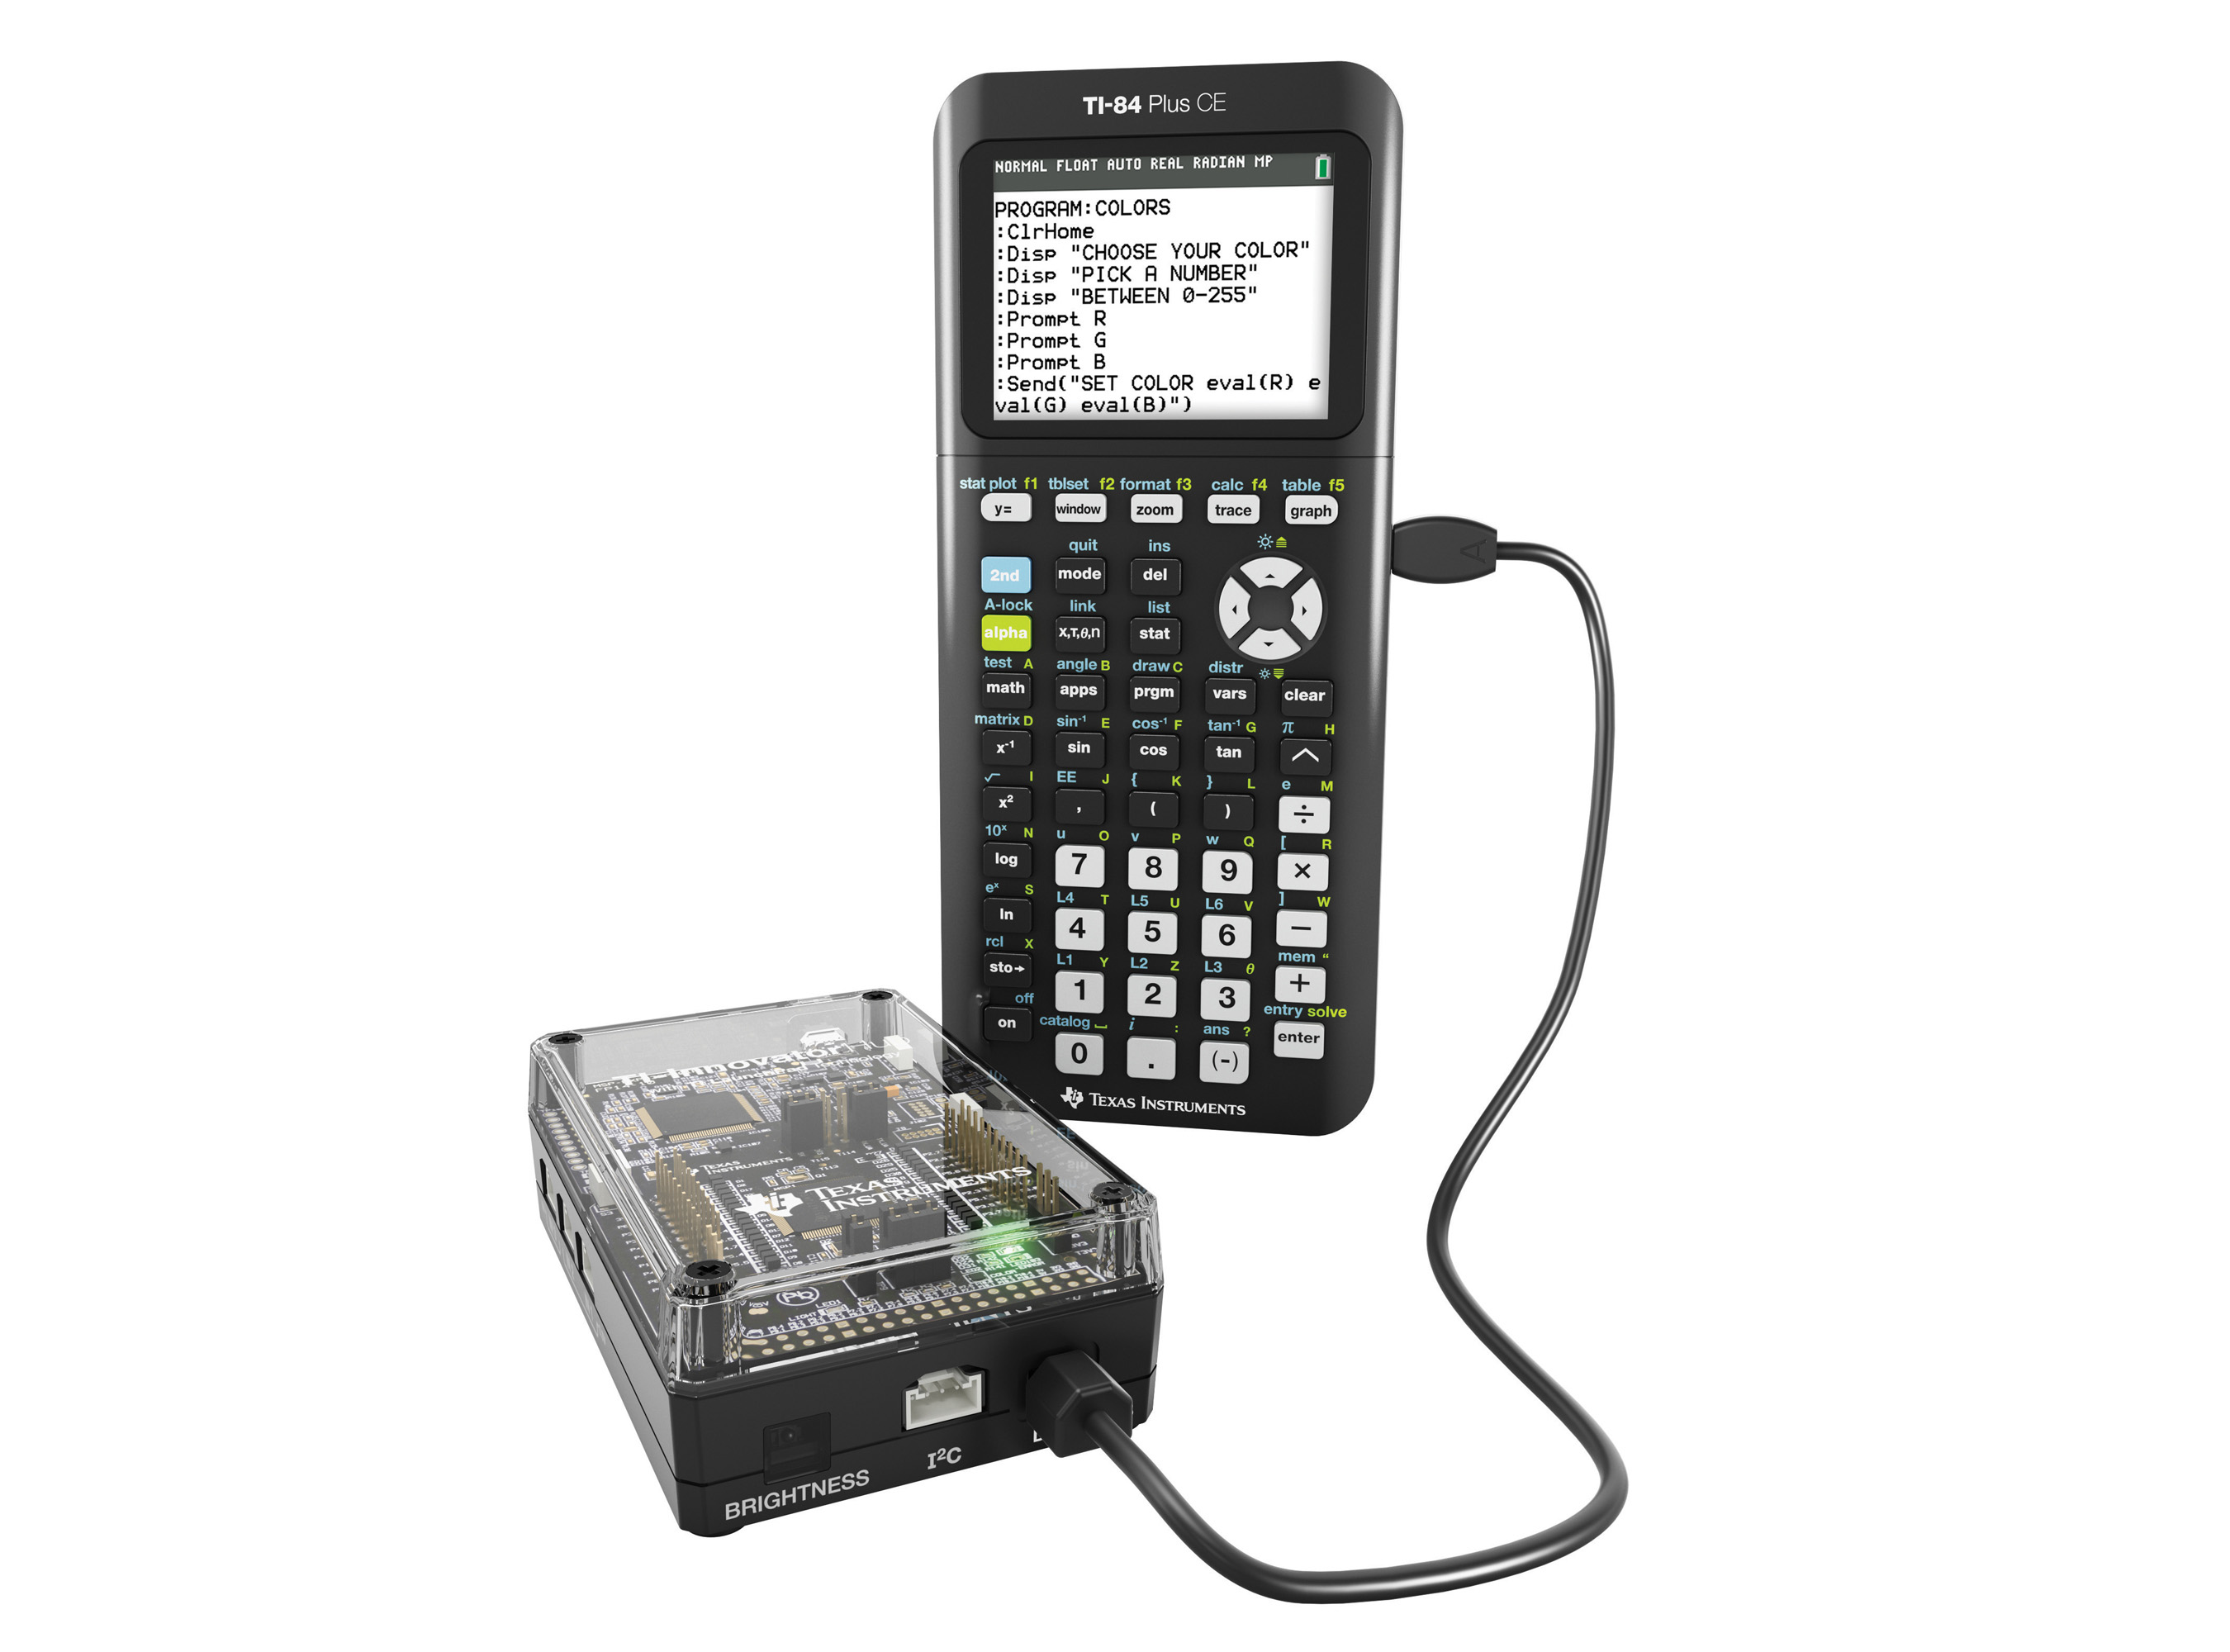 The new TI-Innovator Hub pairs with a TI-Nspire CX or TI-84 Plus Plus CE graphing calculator to bring STEM subjects to life.